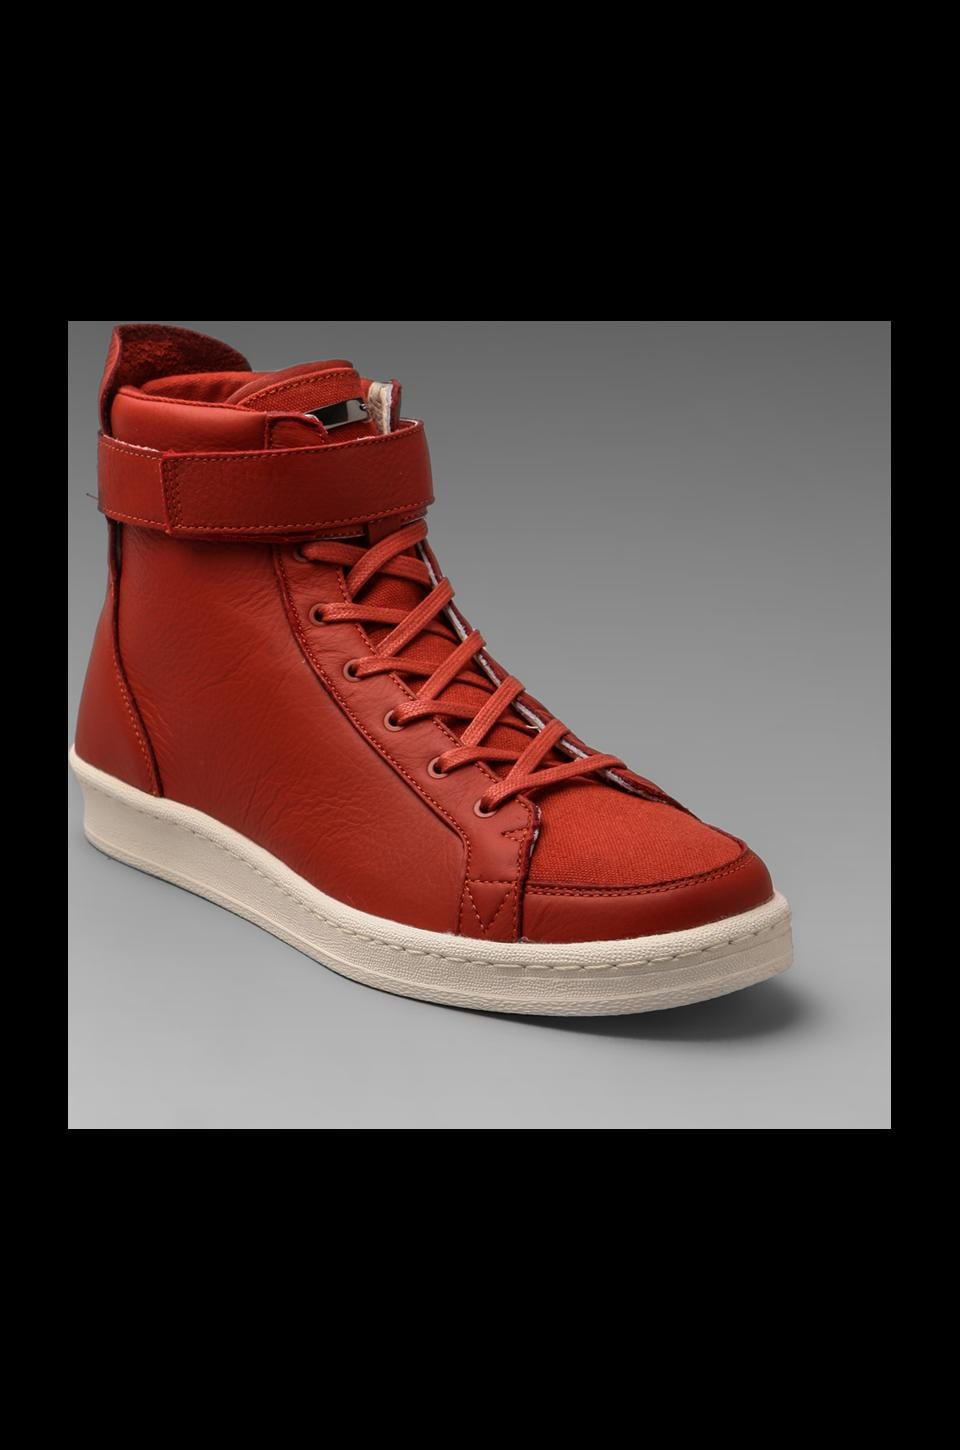 adidas SLVR Cupsole Hi Shoes in Natural Red